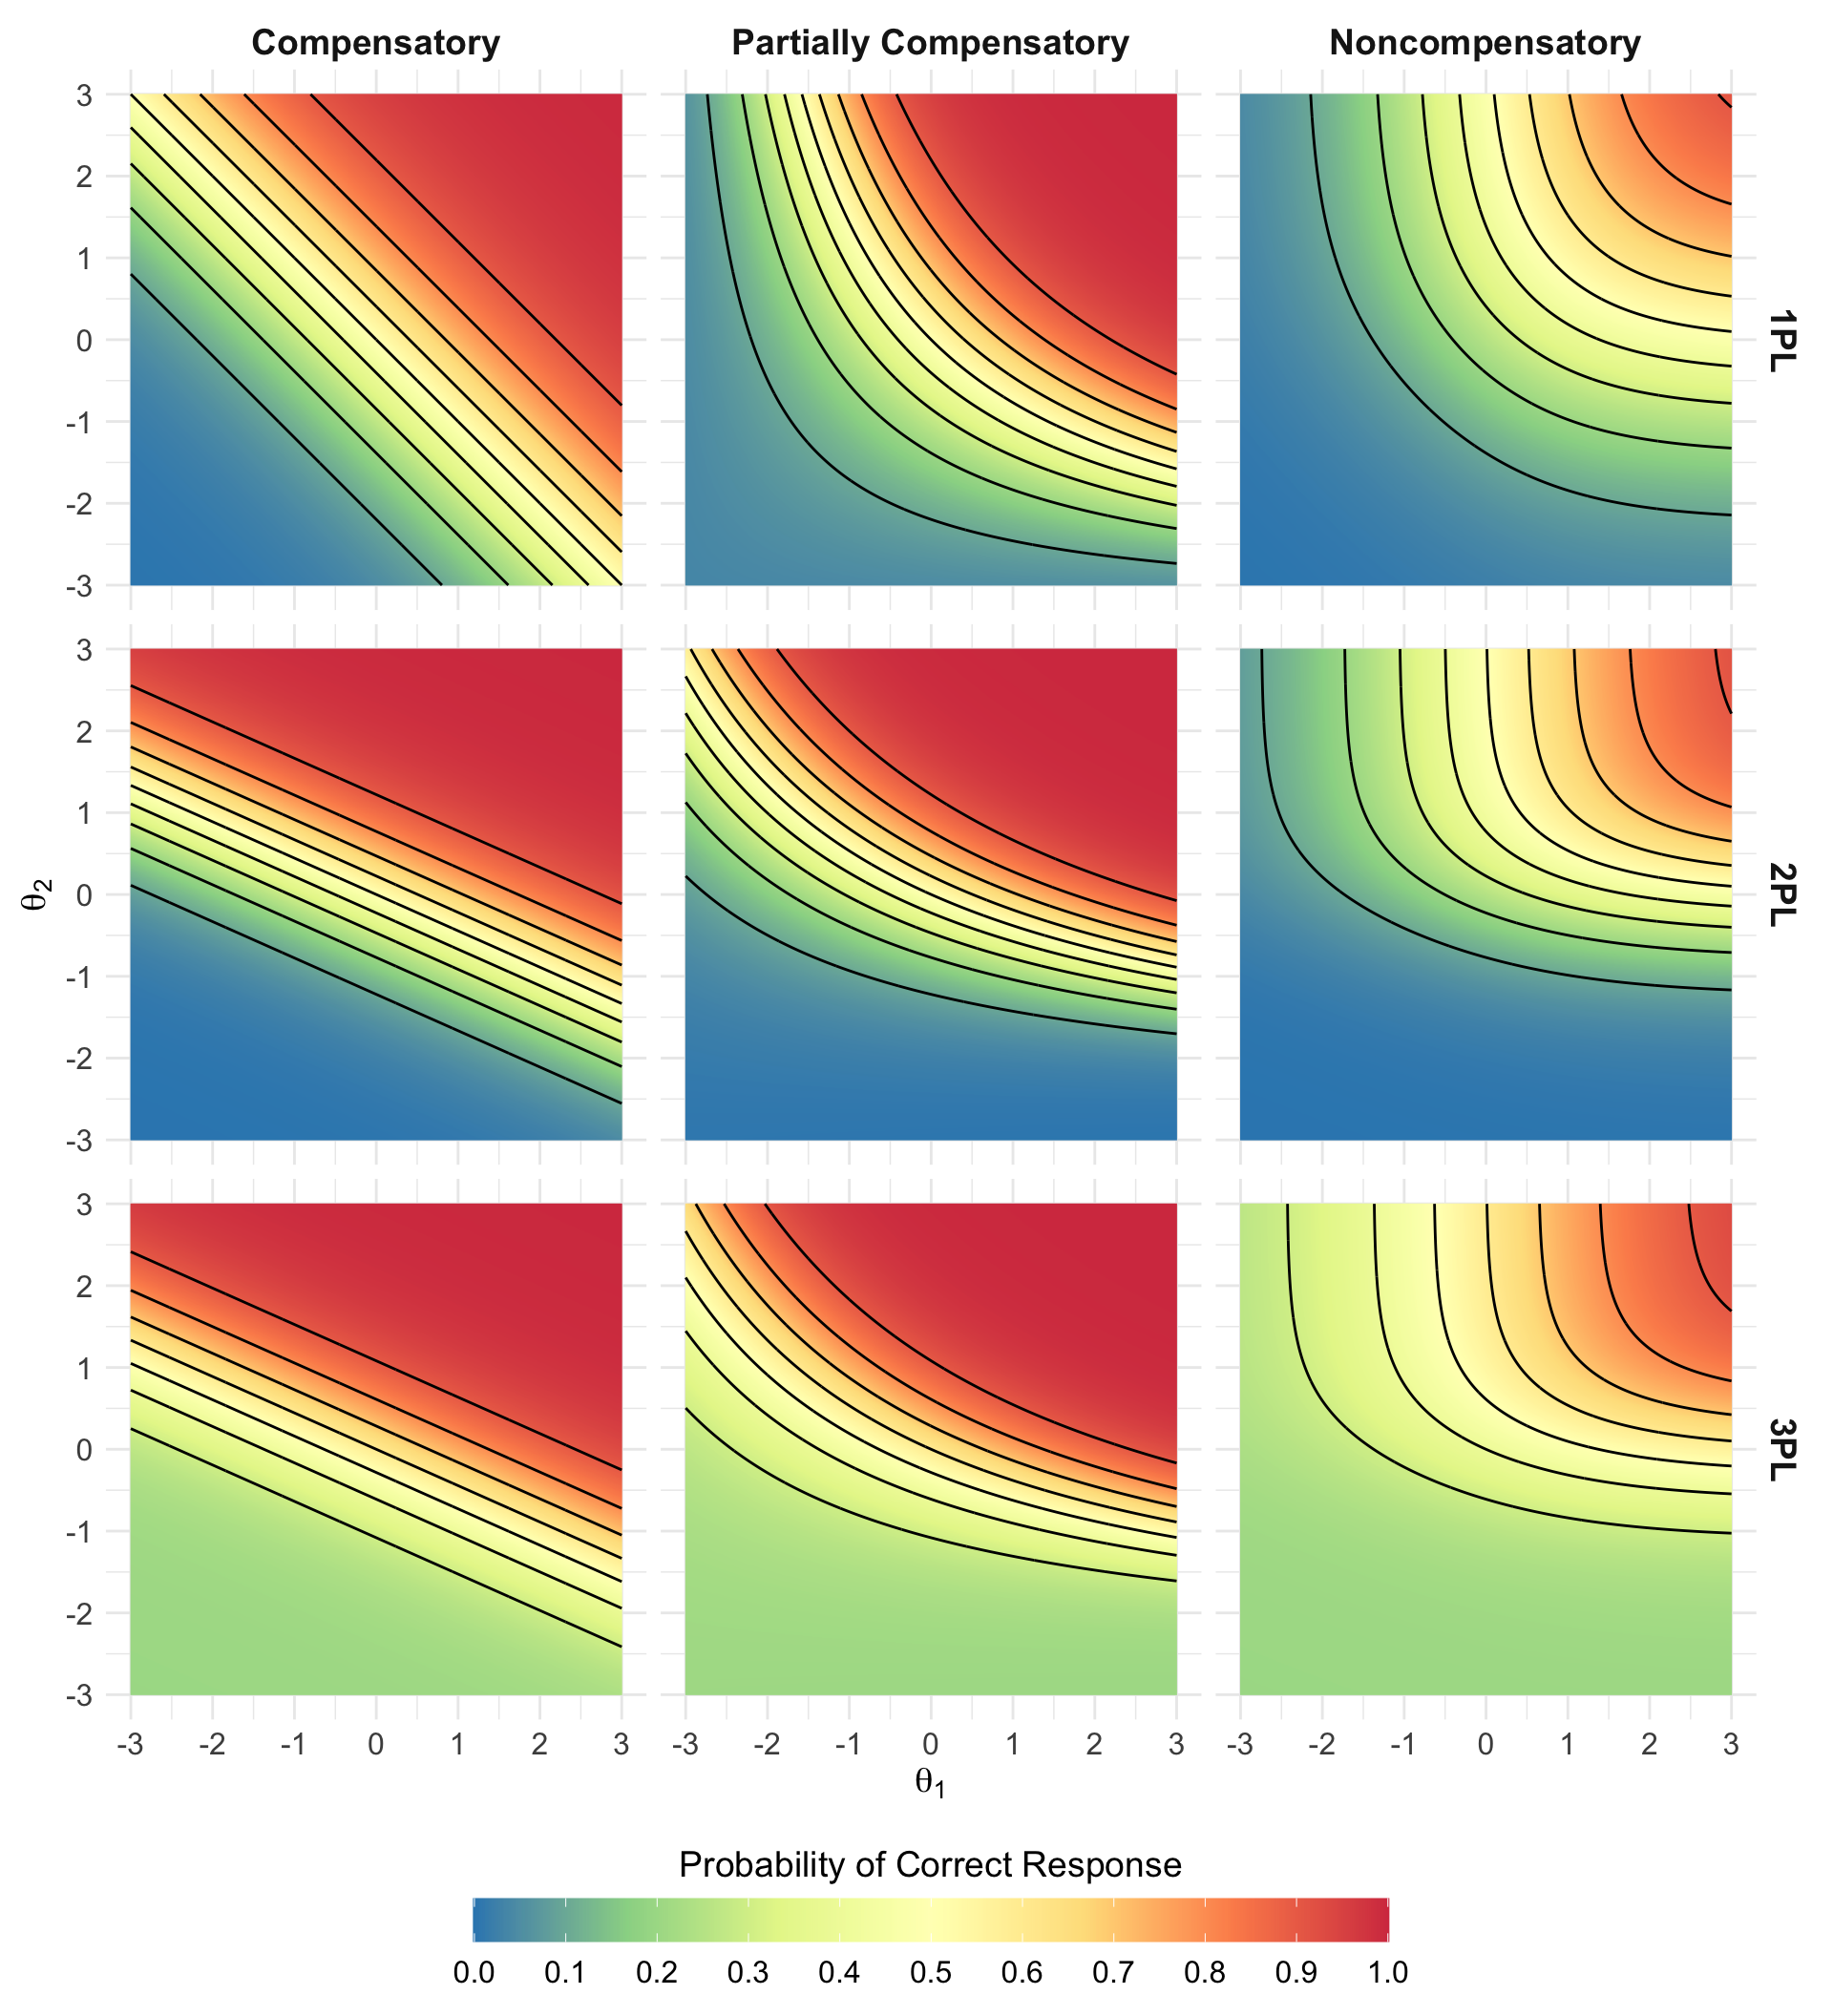 Visualizing different levels of compensation in multidimensional item response theory models